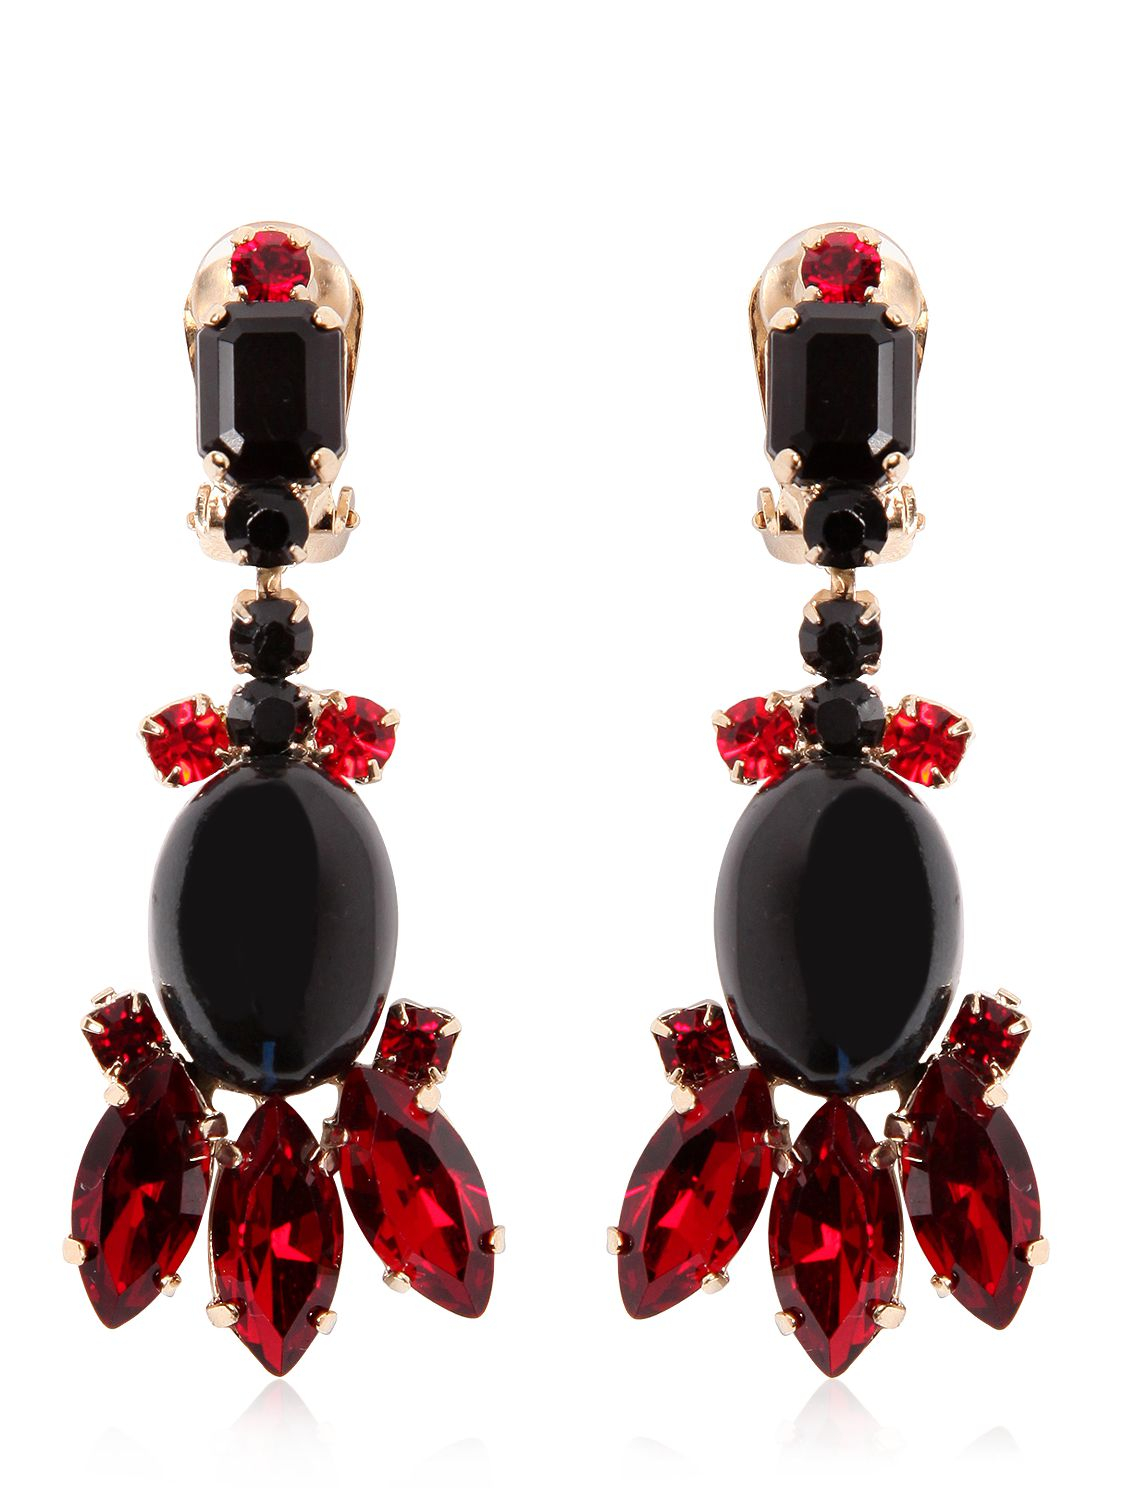 Shop red clip-on earrings and other red earrings items from the world's best dealers at 1stdibs. Global shipping available.